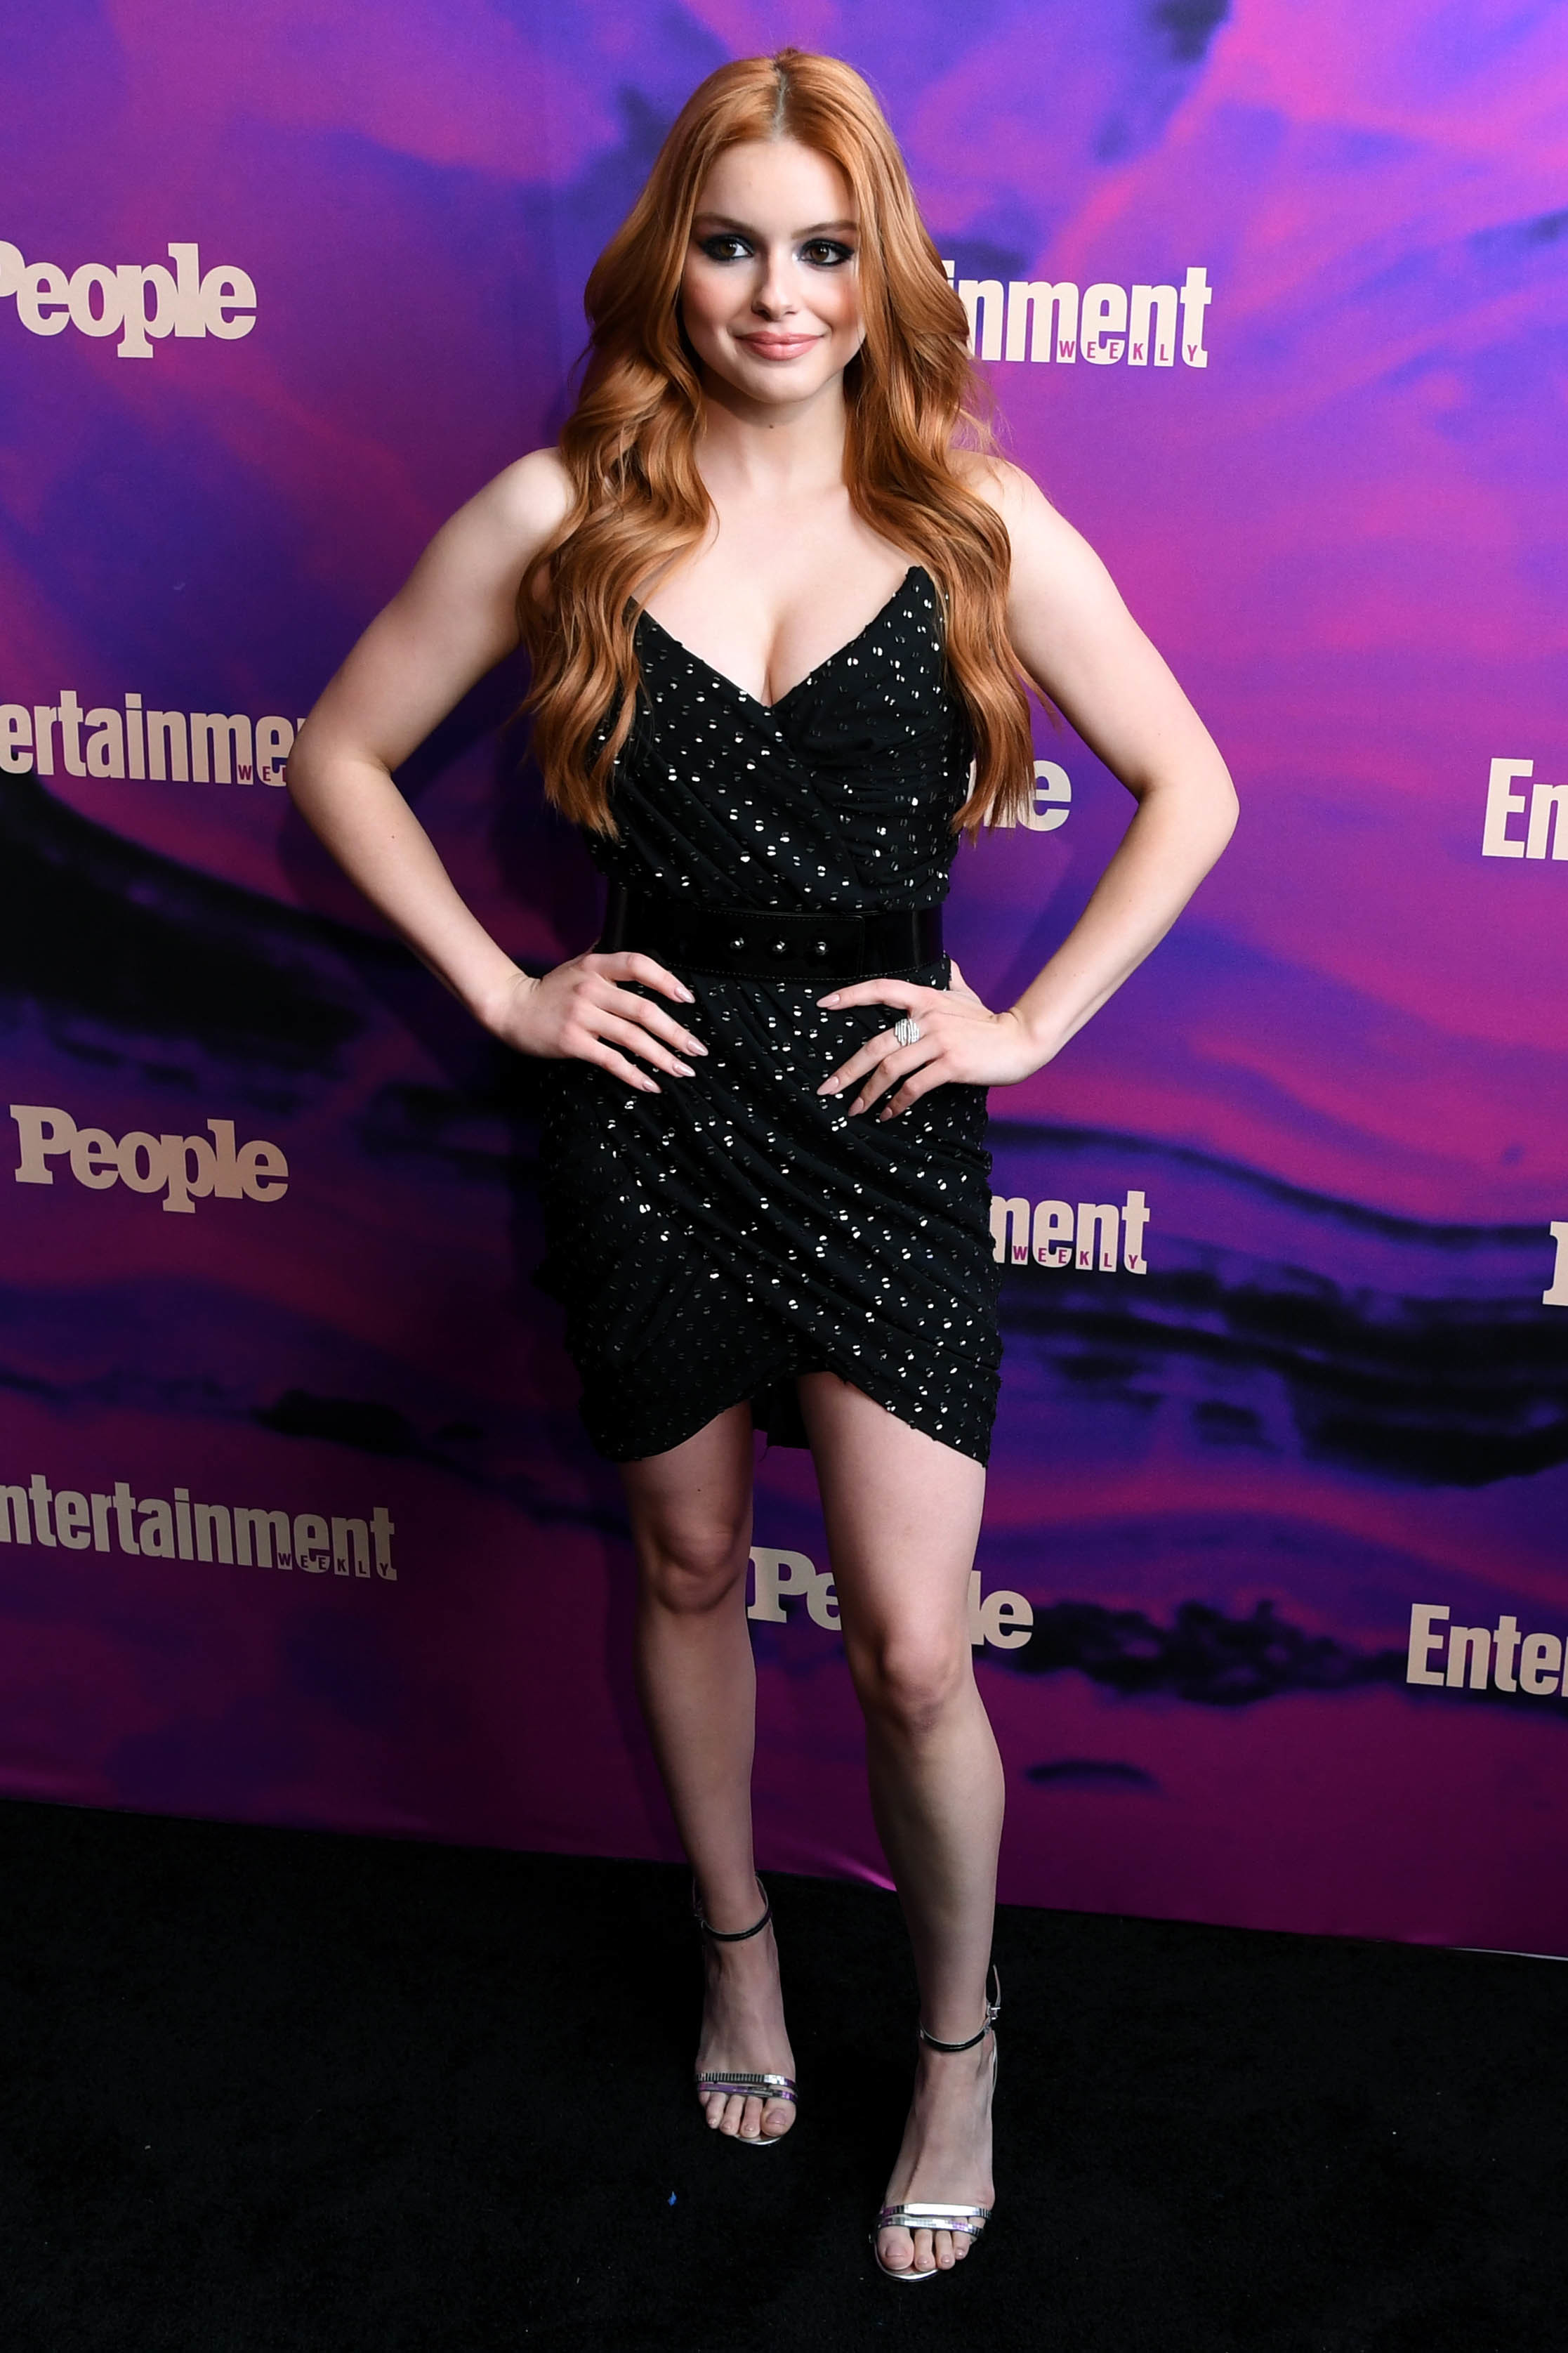 Ariel Winter attends the Entertainment Weekly and People Magazine Upfront Party in New York City on May 13, 2019.